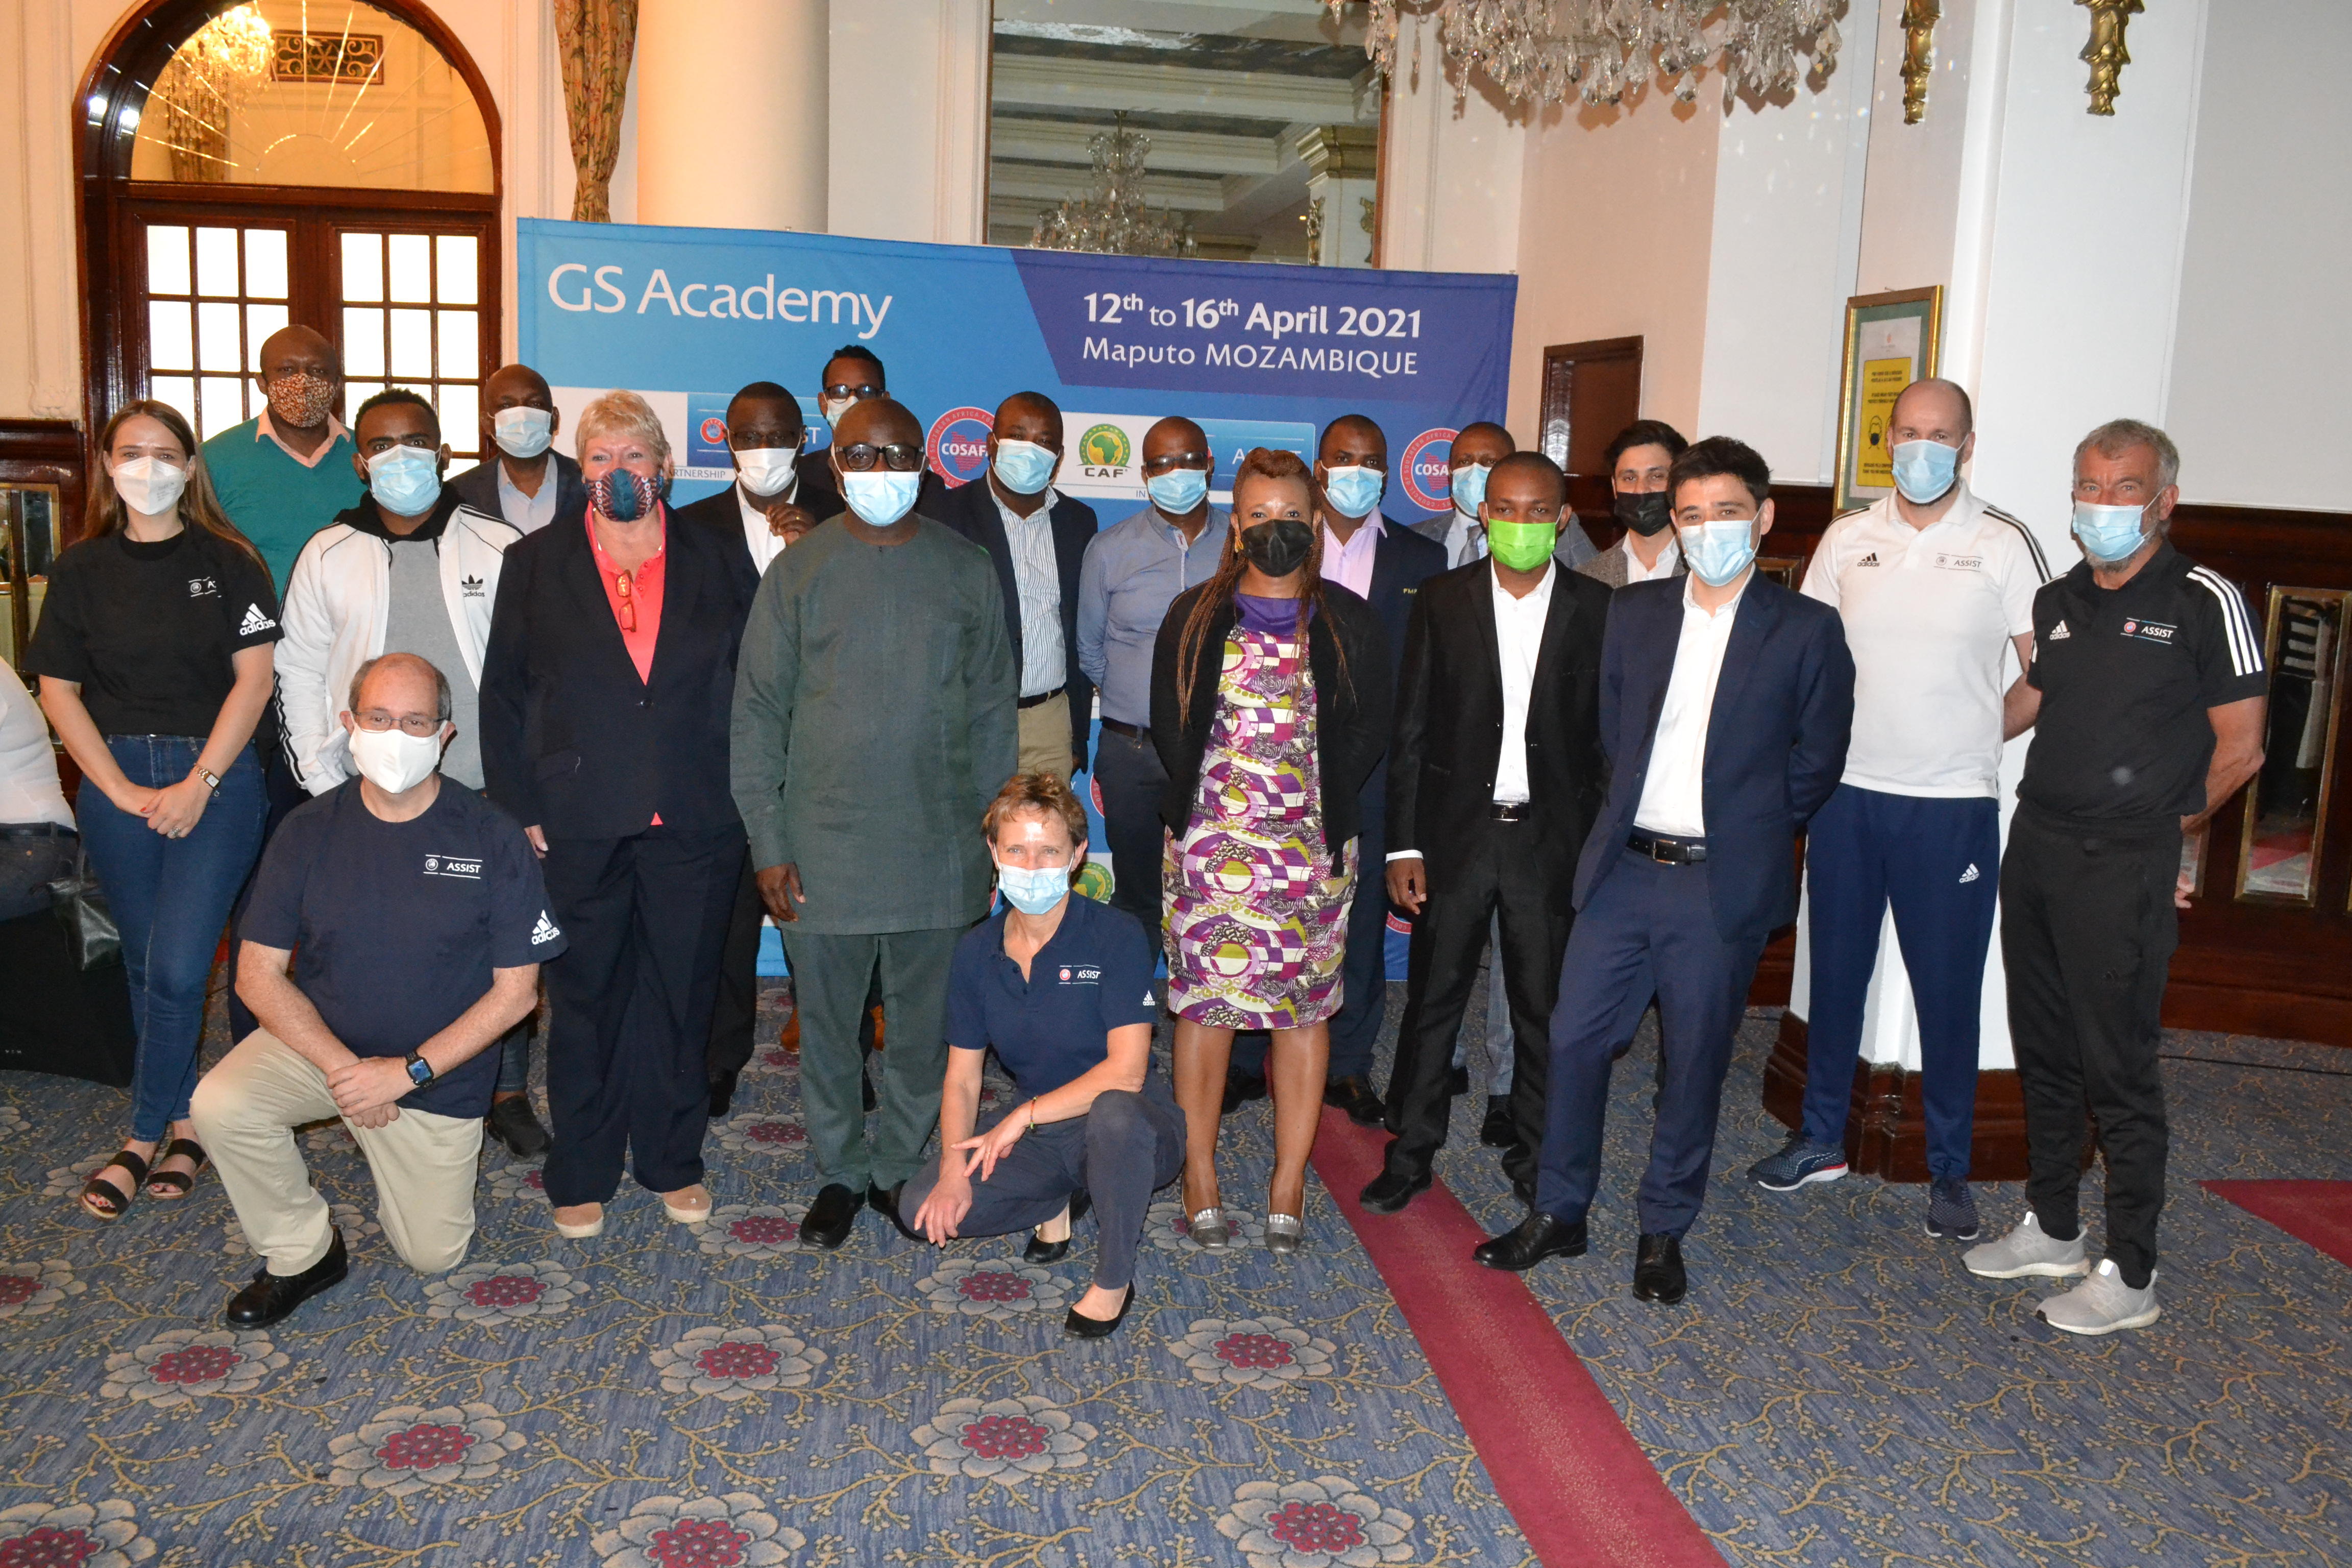 General Secretary arrives in Maputo for GS Academy